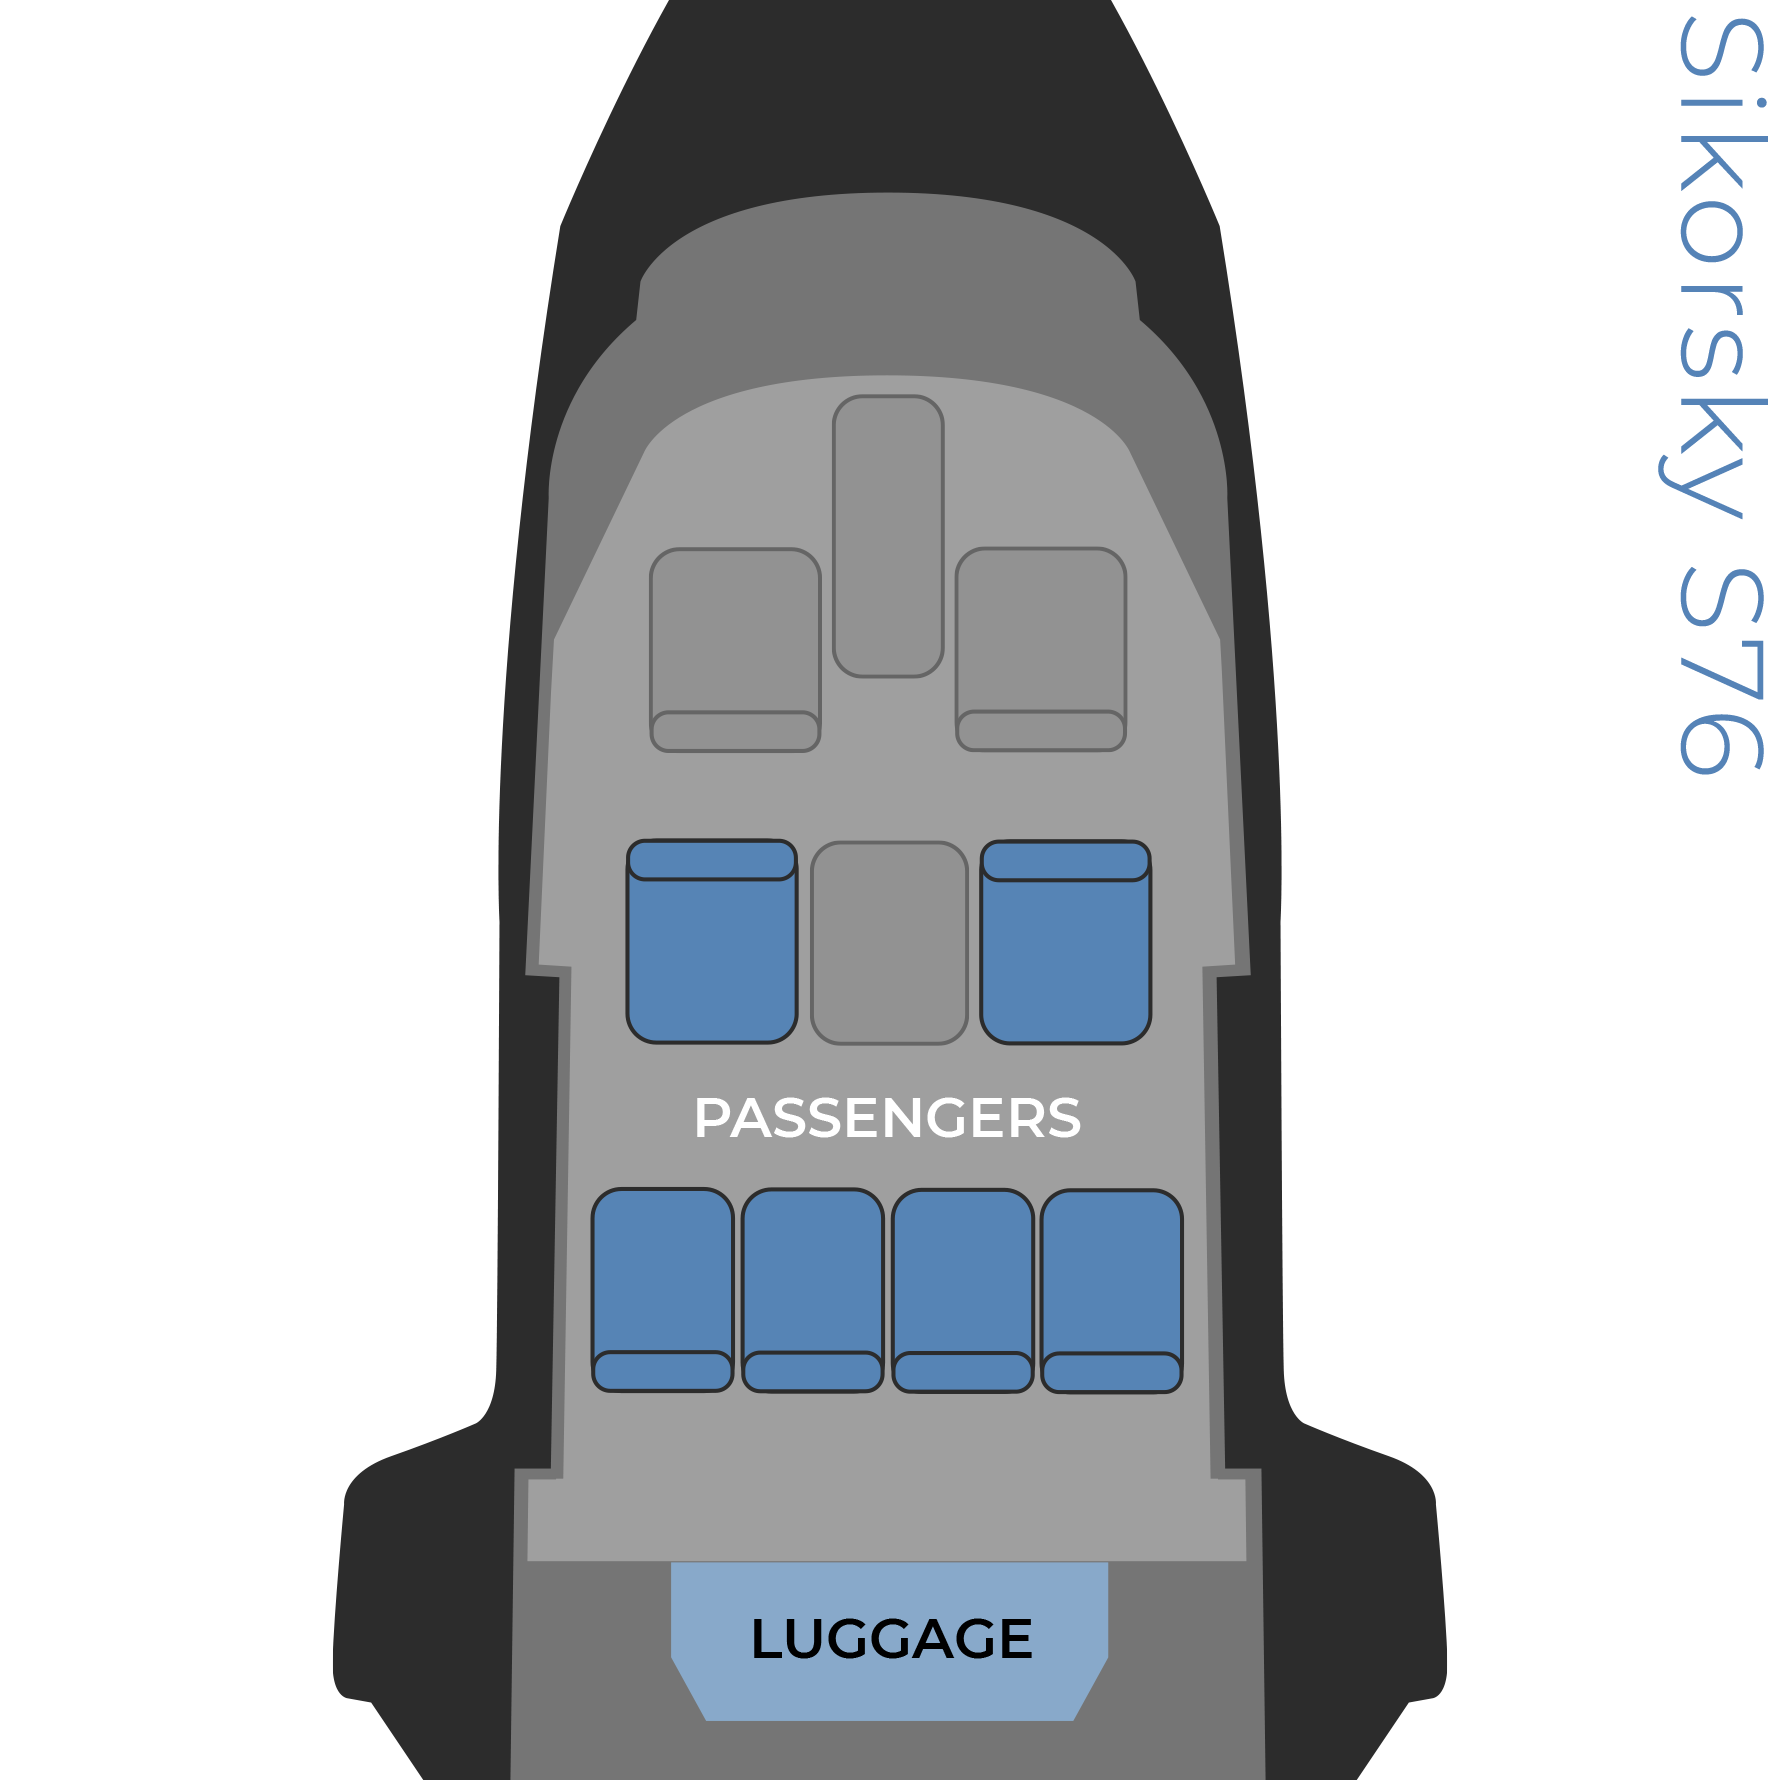 Sikorsky S76 seat configuration image